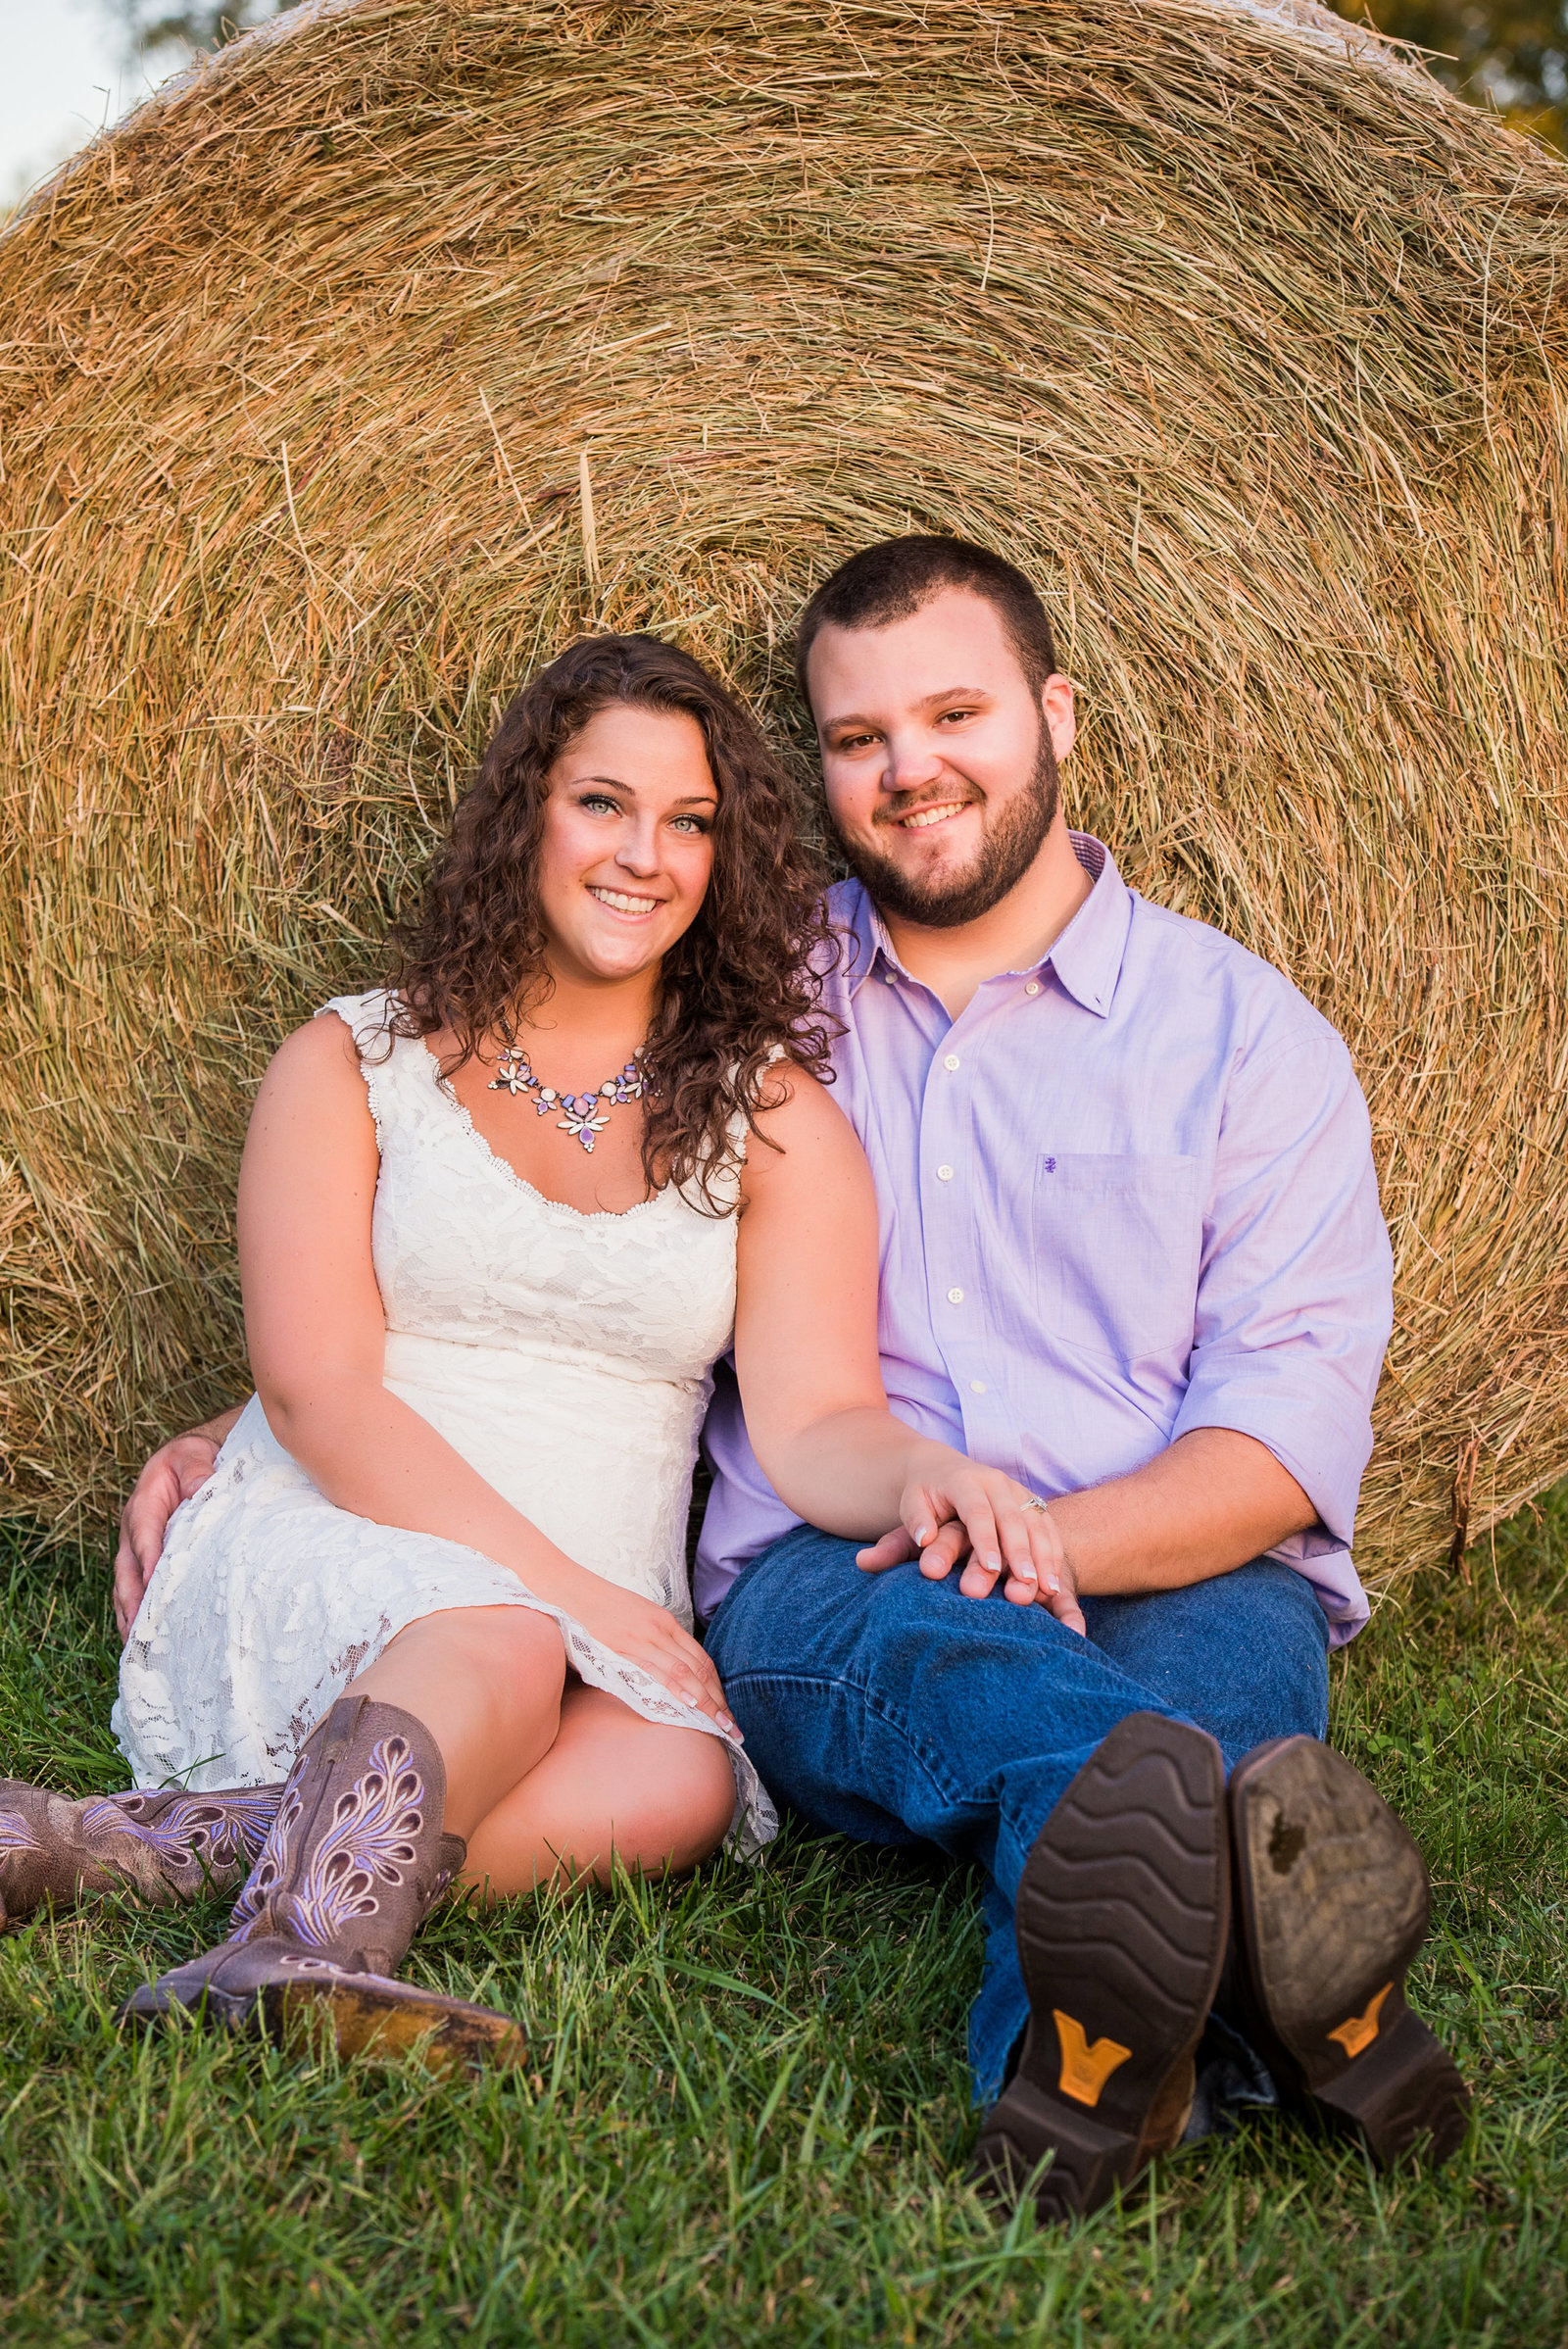 NJ_Rustic_Engagement_Photography163